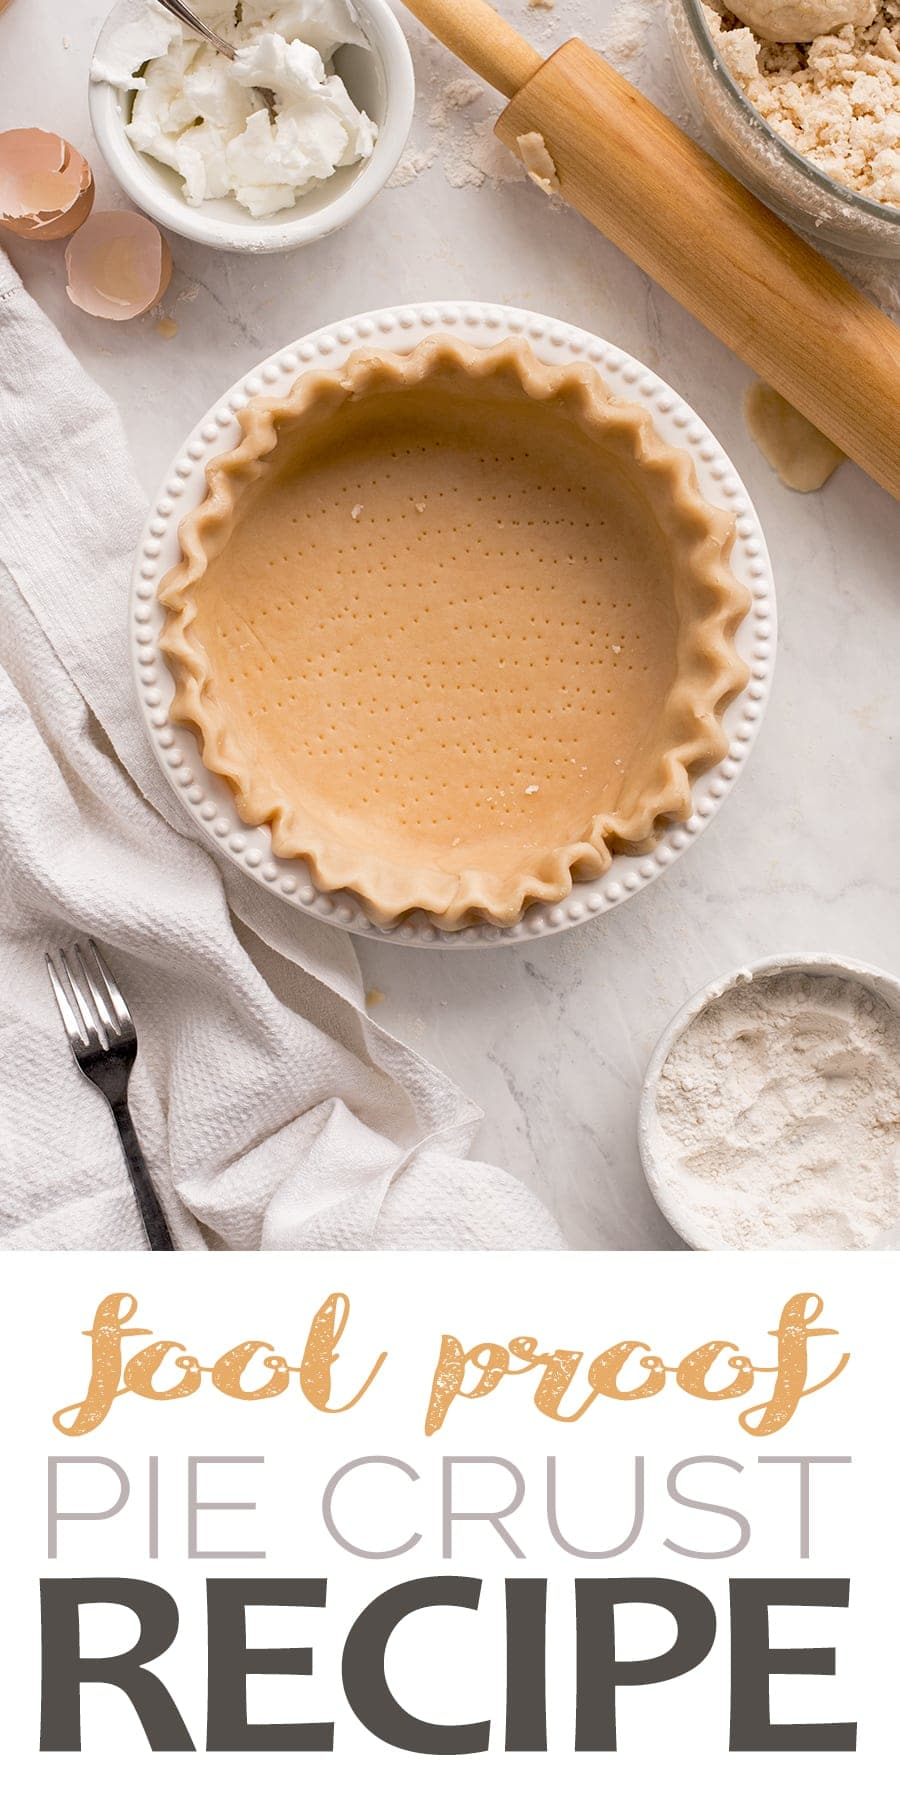 This heirloom pie crust recipe rolls out like a dream. It's flaky, tender and time tested so you know it will never fail.